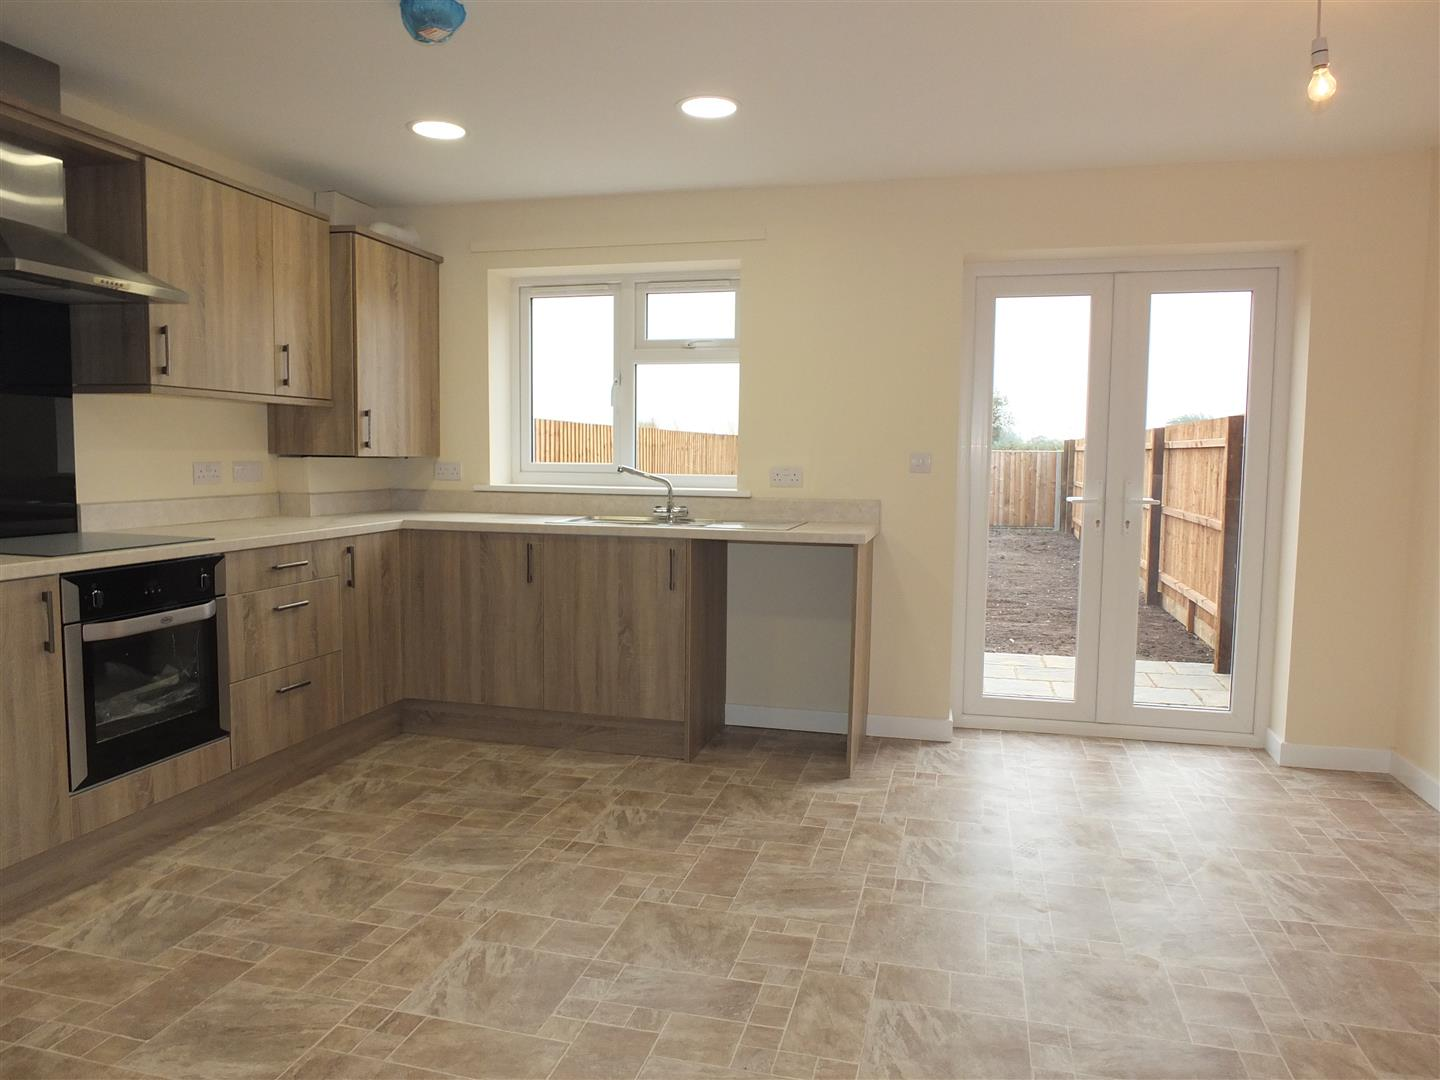 3 bed house to rent in Long Sutton, PE12 9LE  - Property Image 4